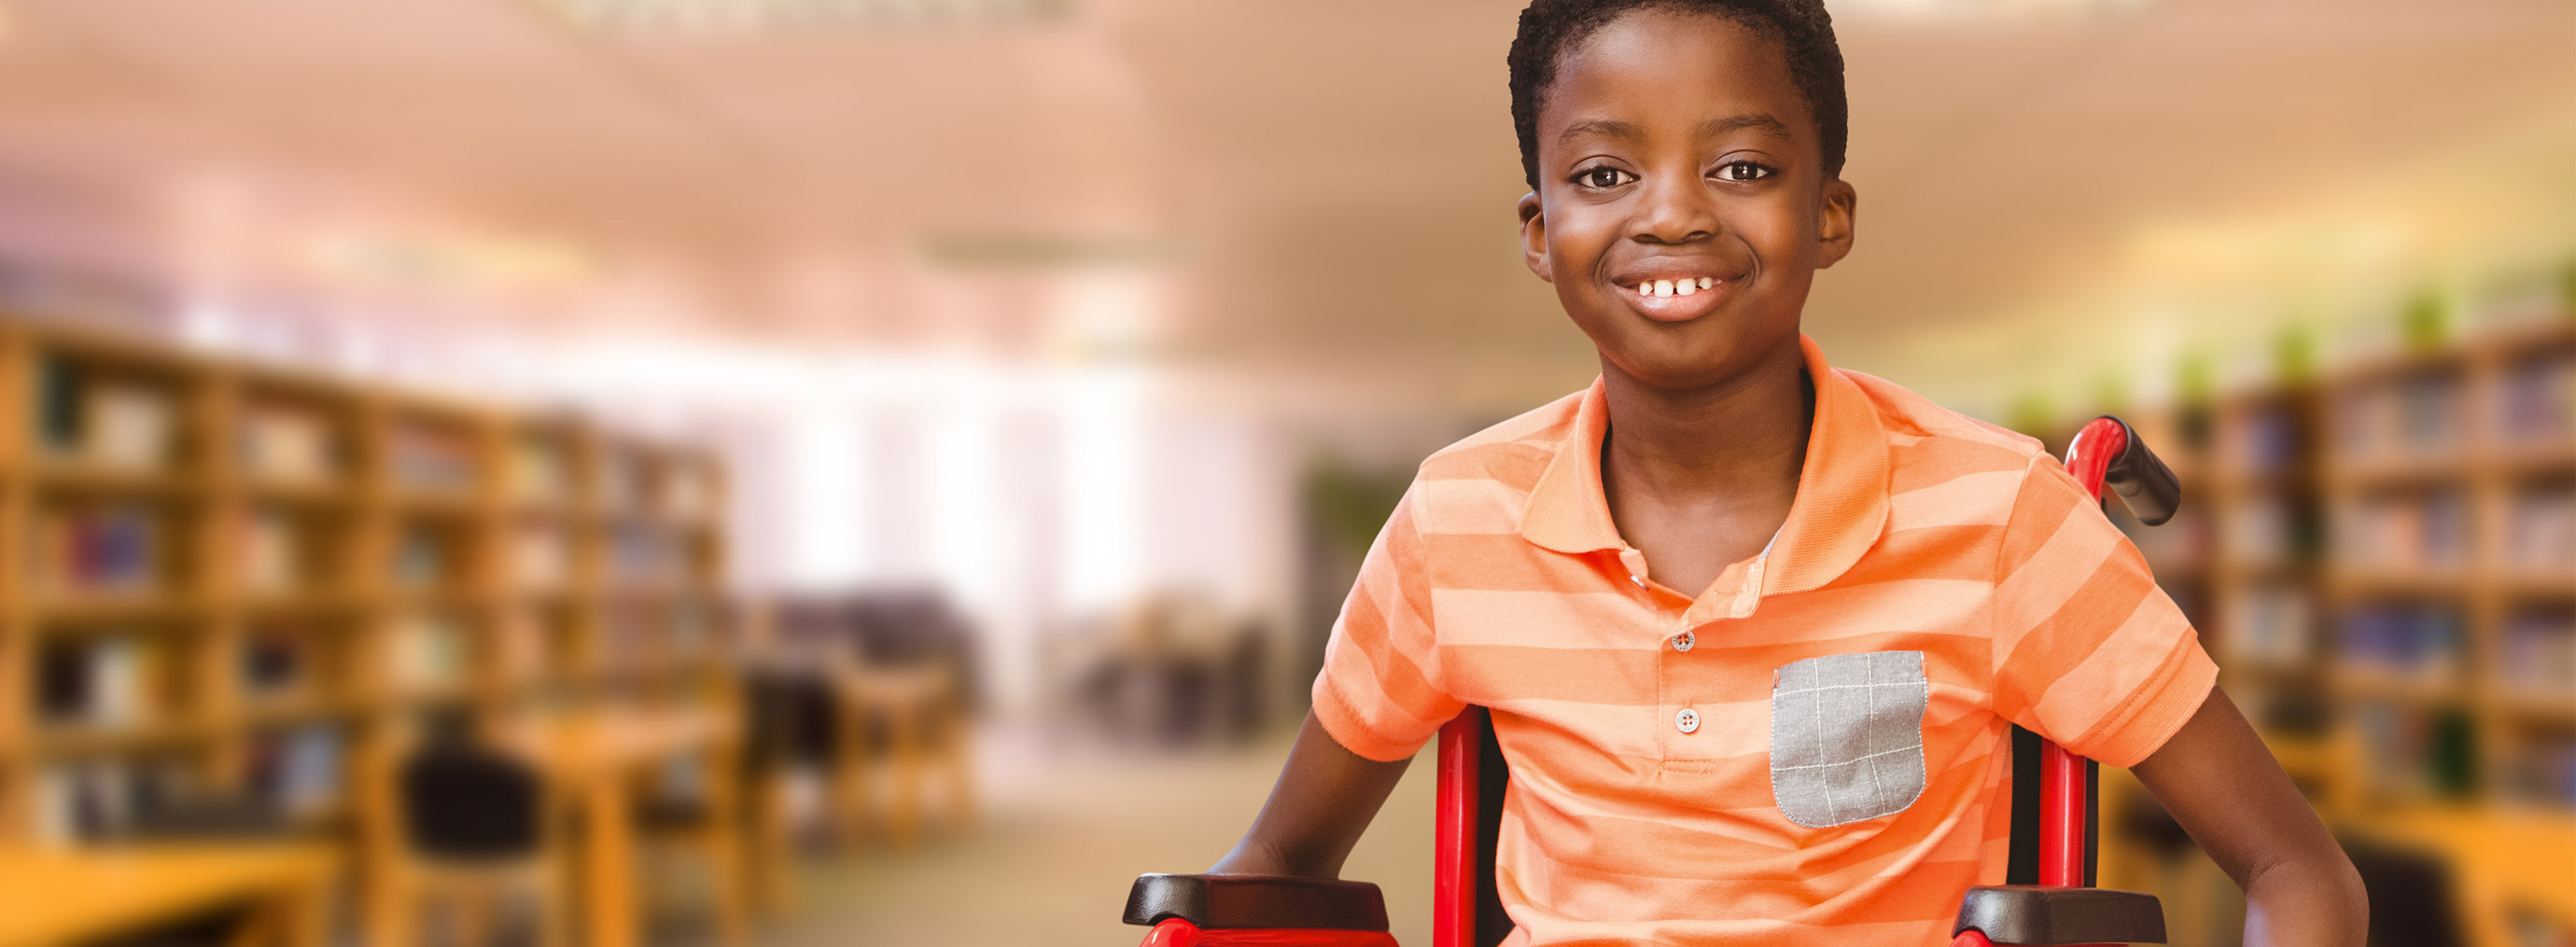 boy in a wheelchair in a library